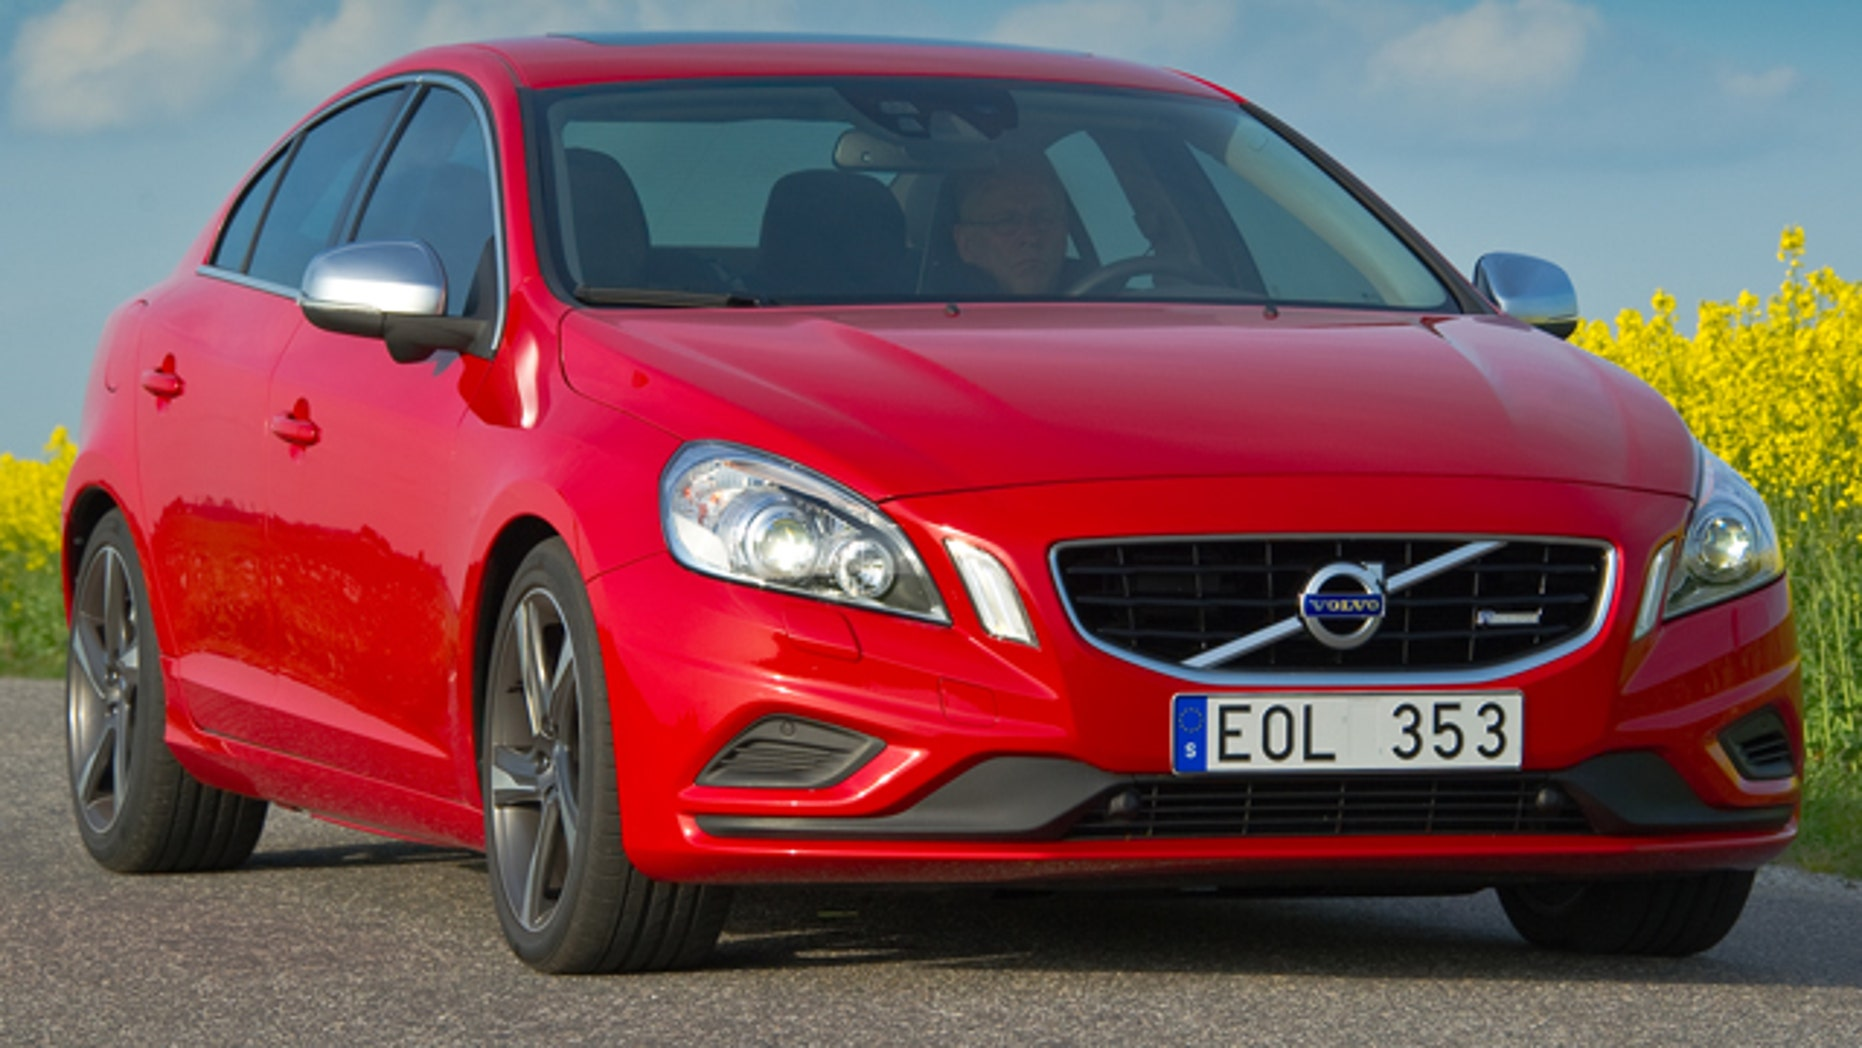 This is a batch print of a Volvo S60 compress oppulance sedan done and marketed by Volvo, a Sweden-based company. It facilities a standard Swedish permit plate.